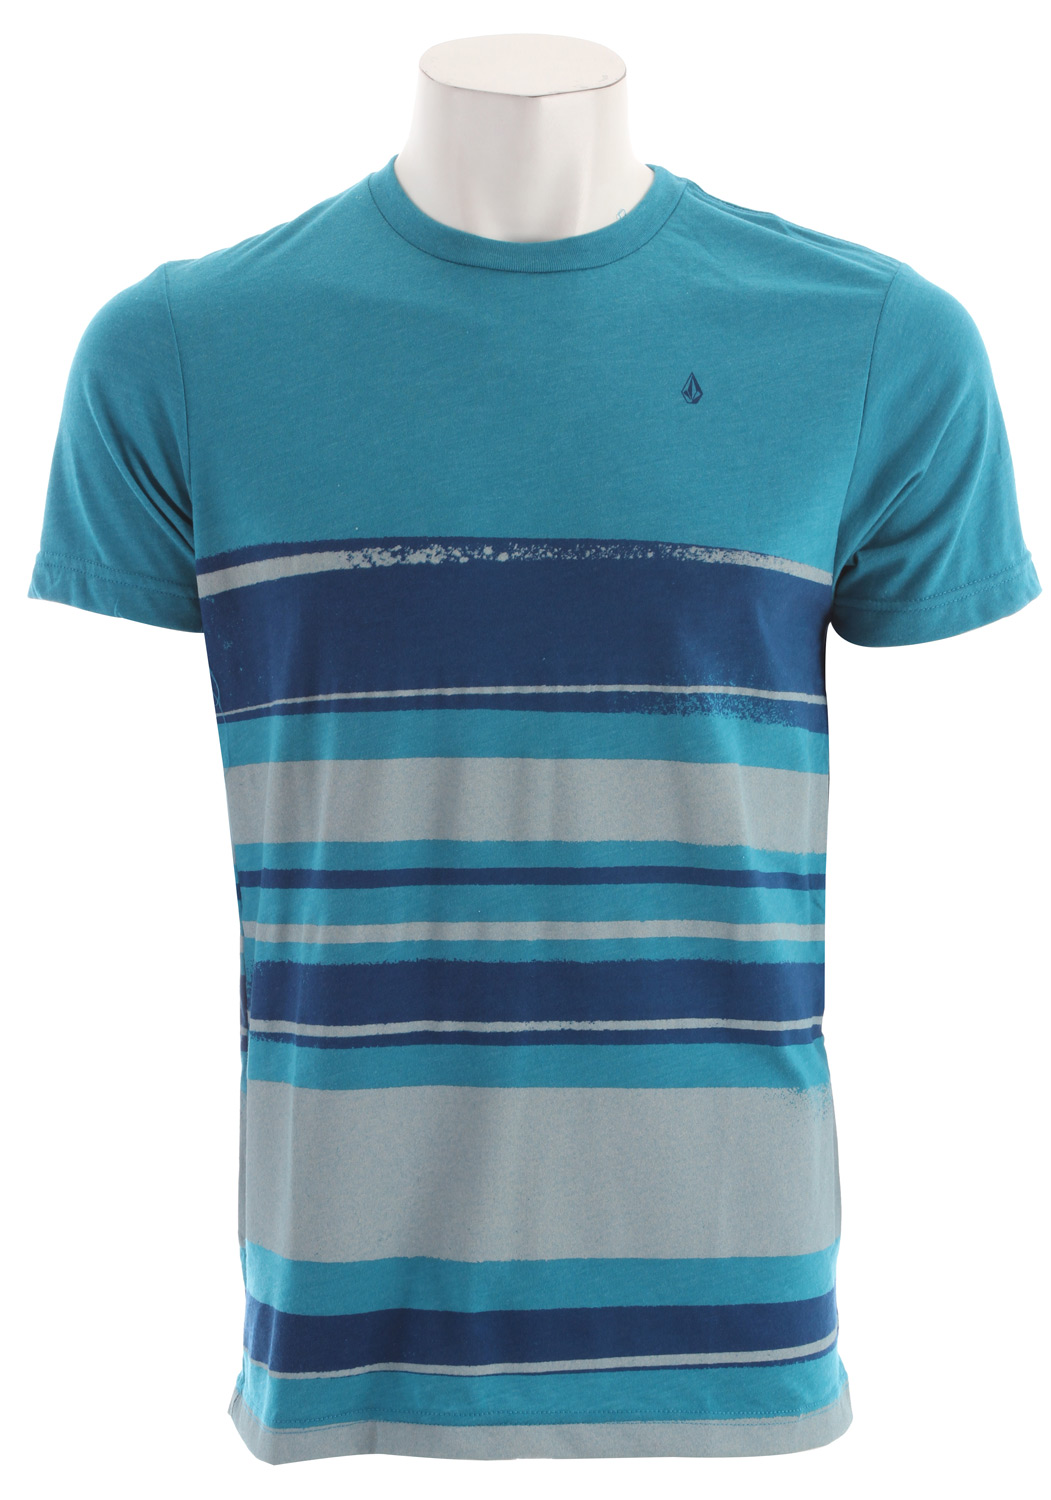 Surf Anything but ordinary, the striped Drab tee transforms your no style into whoa style. 50% cotton/50% polyester - $28.95